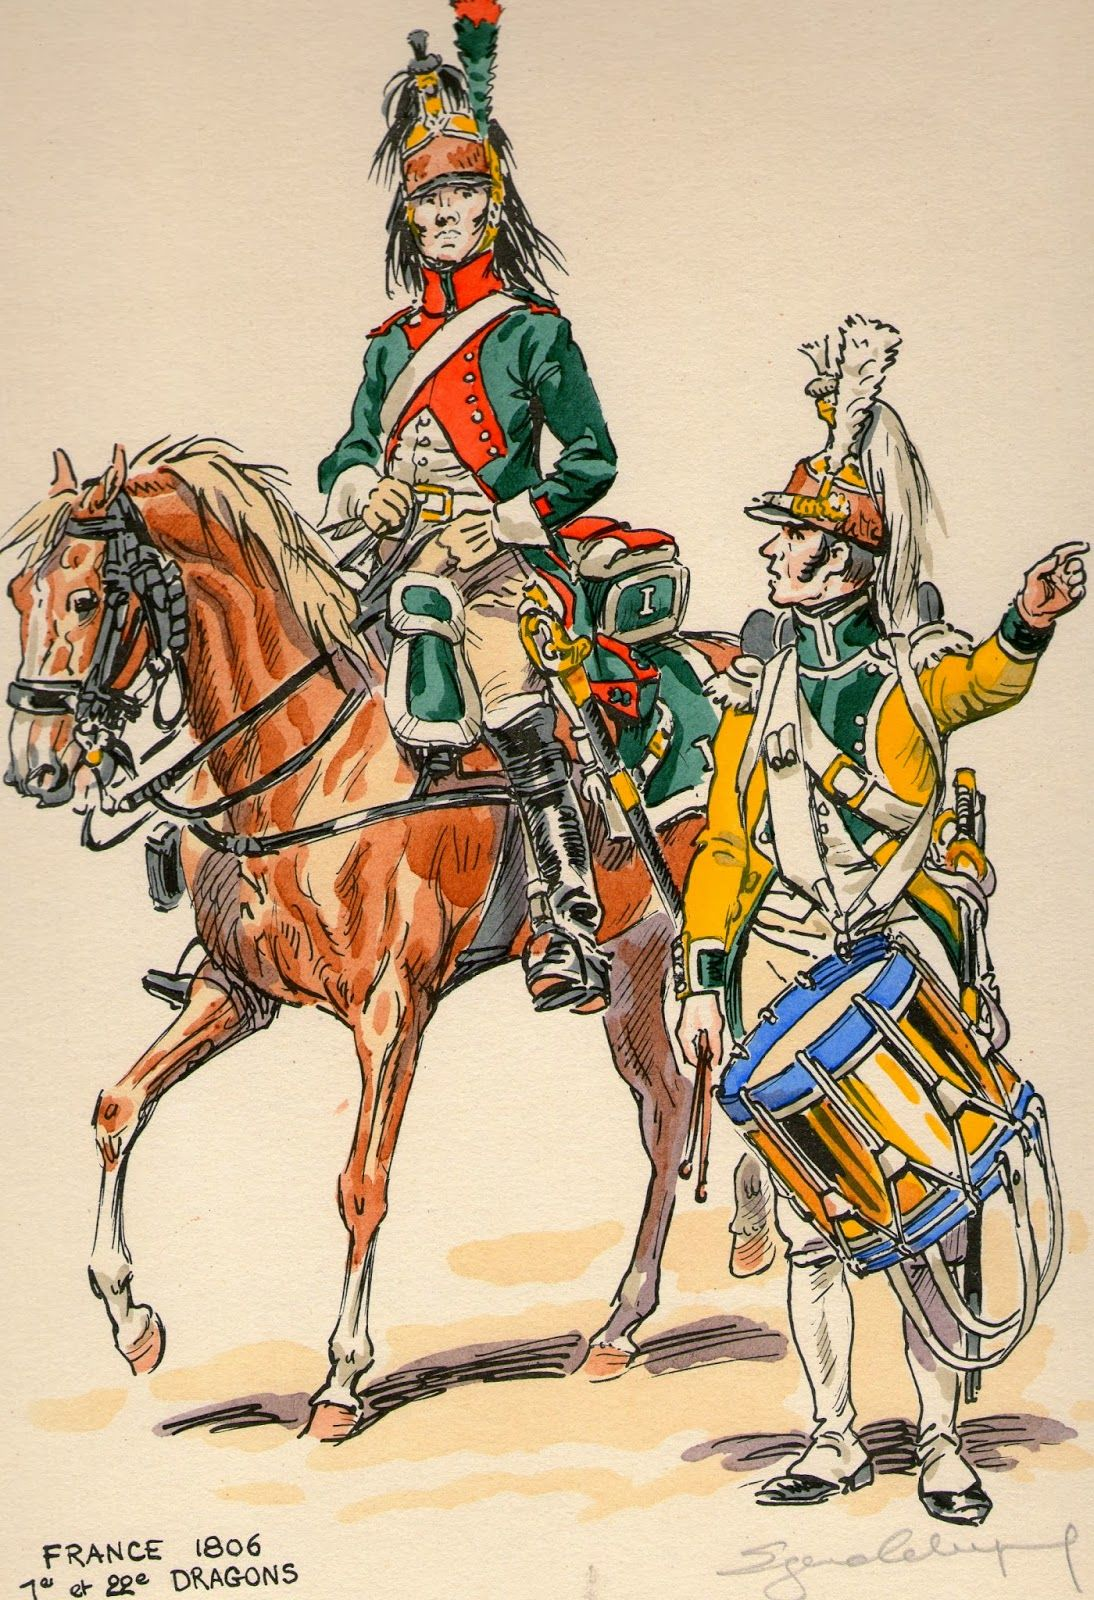 French; 1st Dragoons dragoon & 22nd Dragoons, Drummer on dismounted service 1806 by Eugene Leliepvre